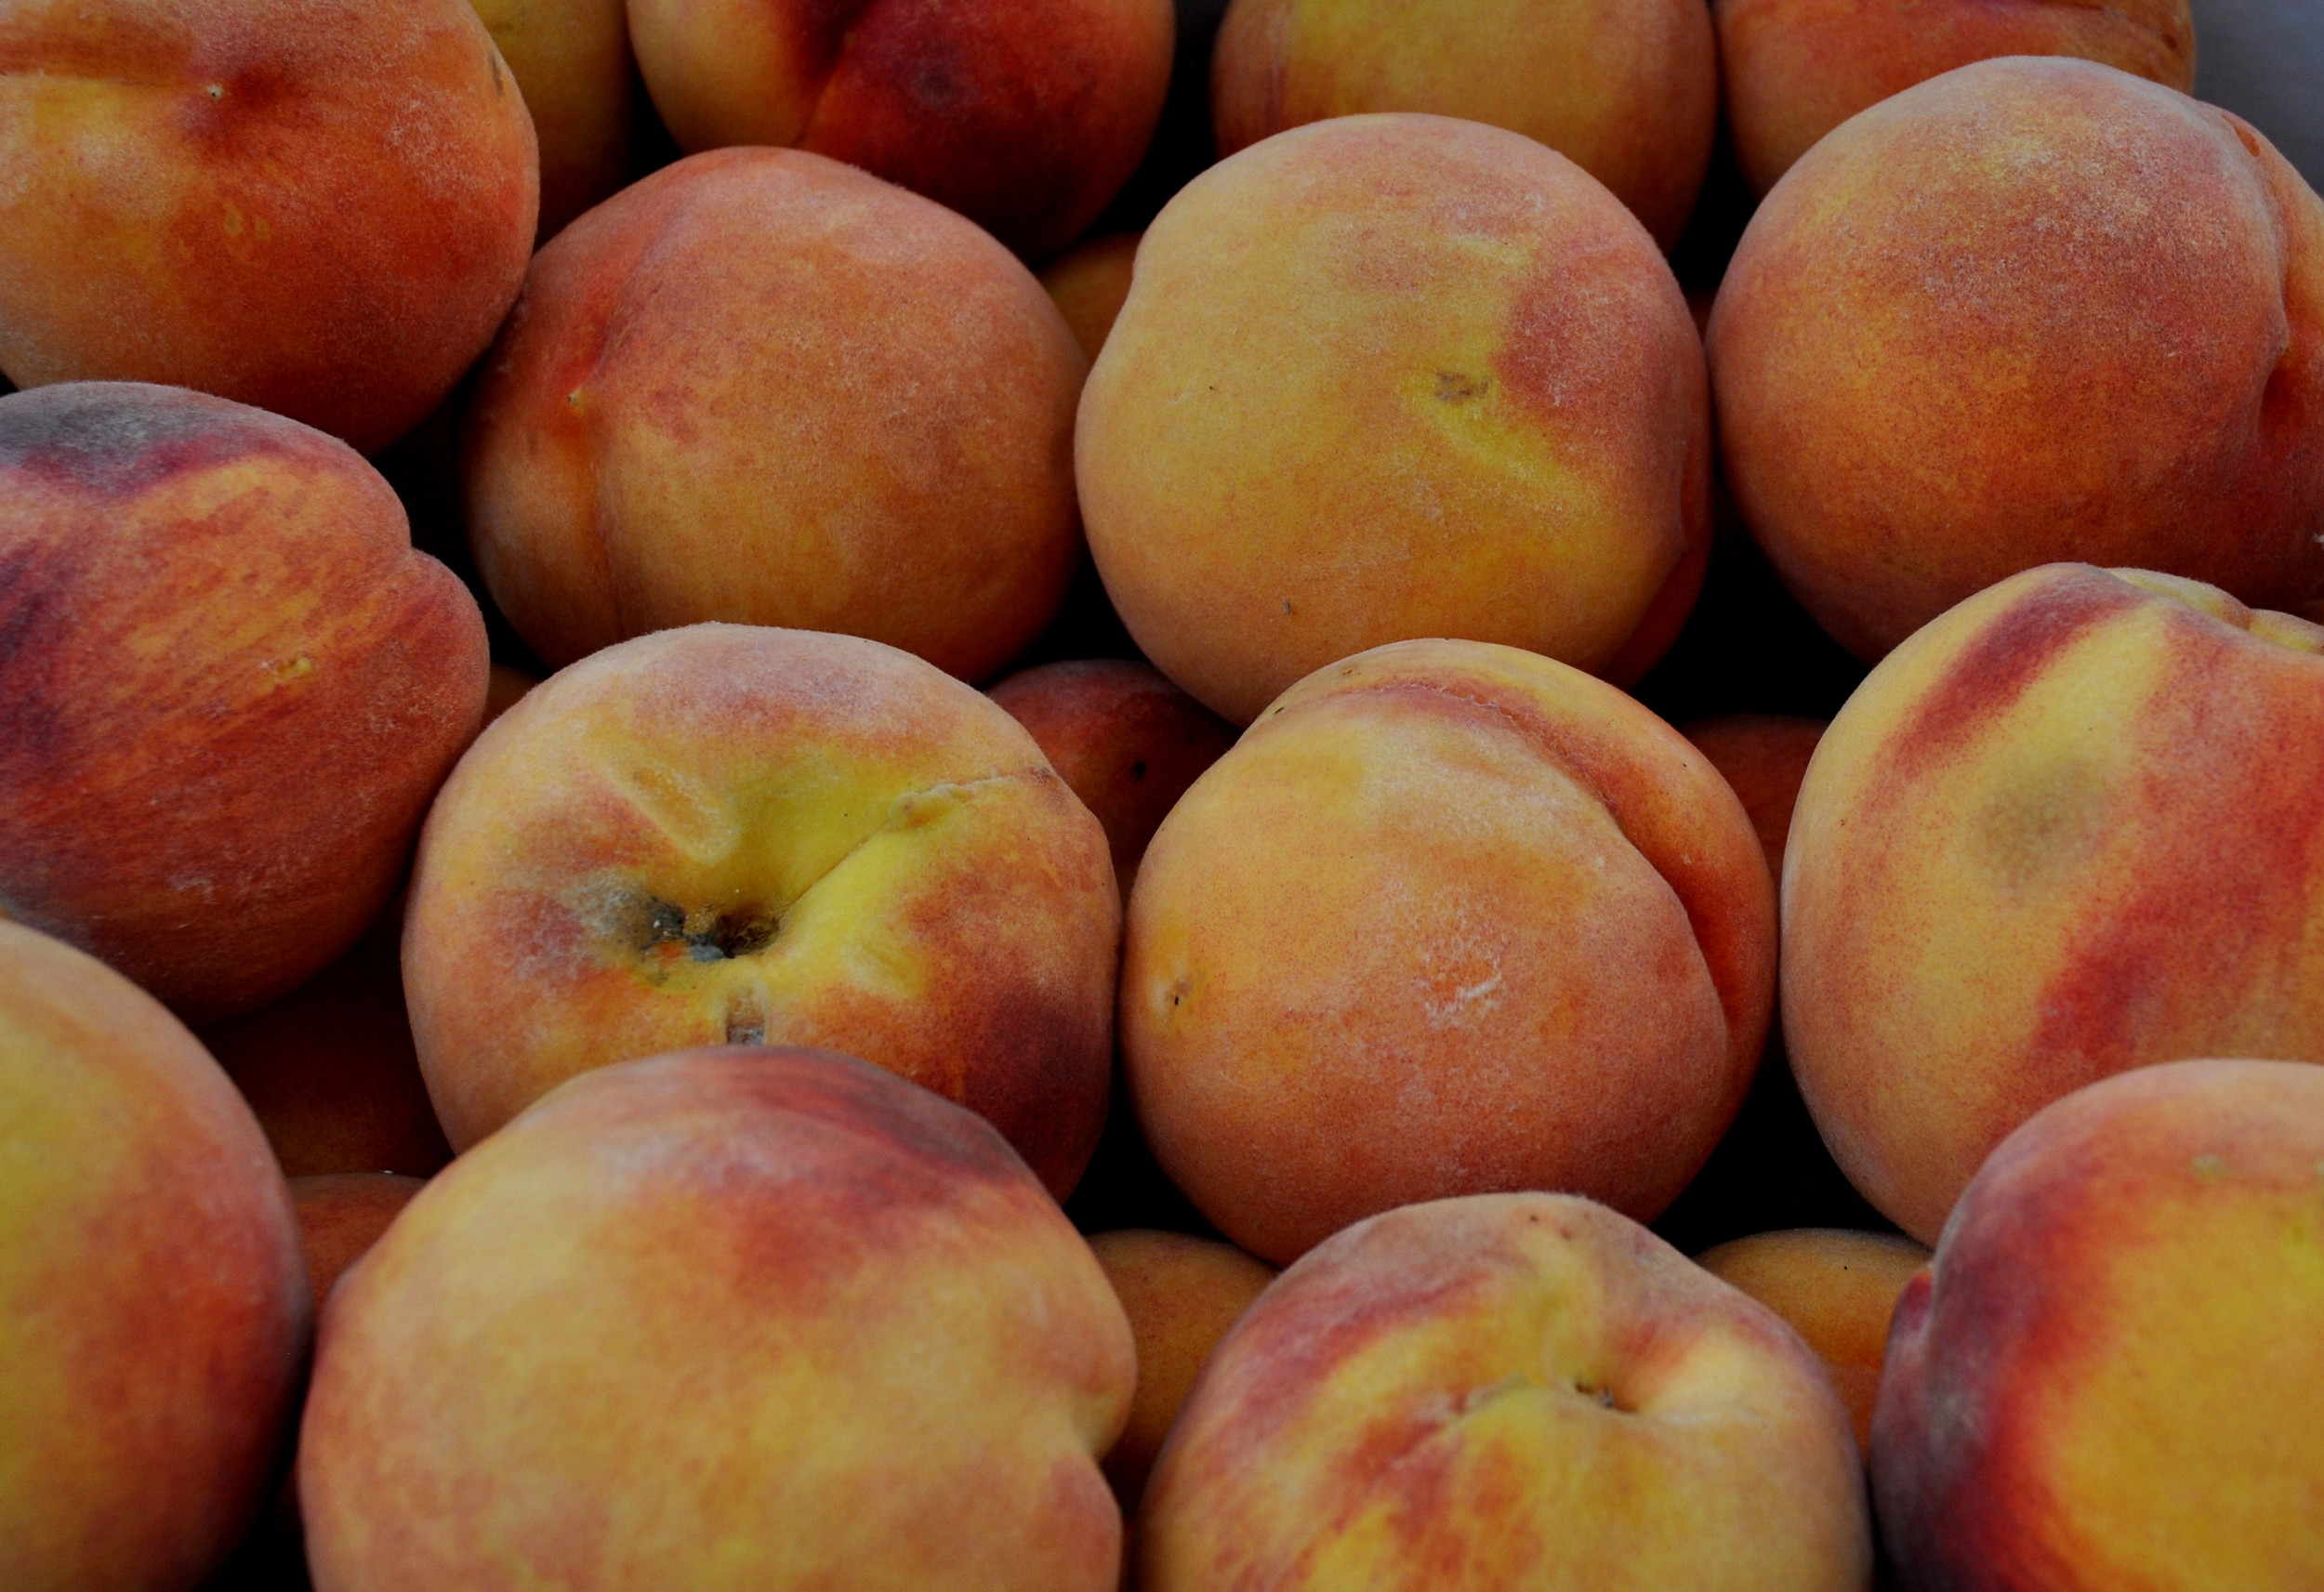 D.H. Hale peaches from Martin Family Orchards. Photo copyright 2013 by Zachary D. Lyons.